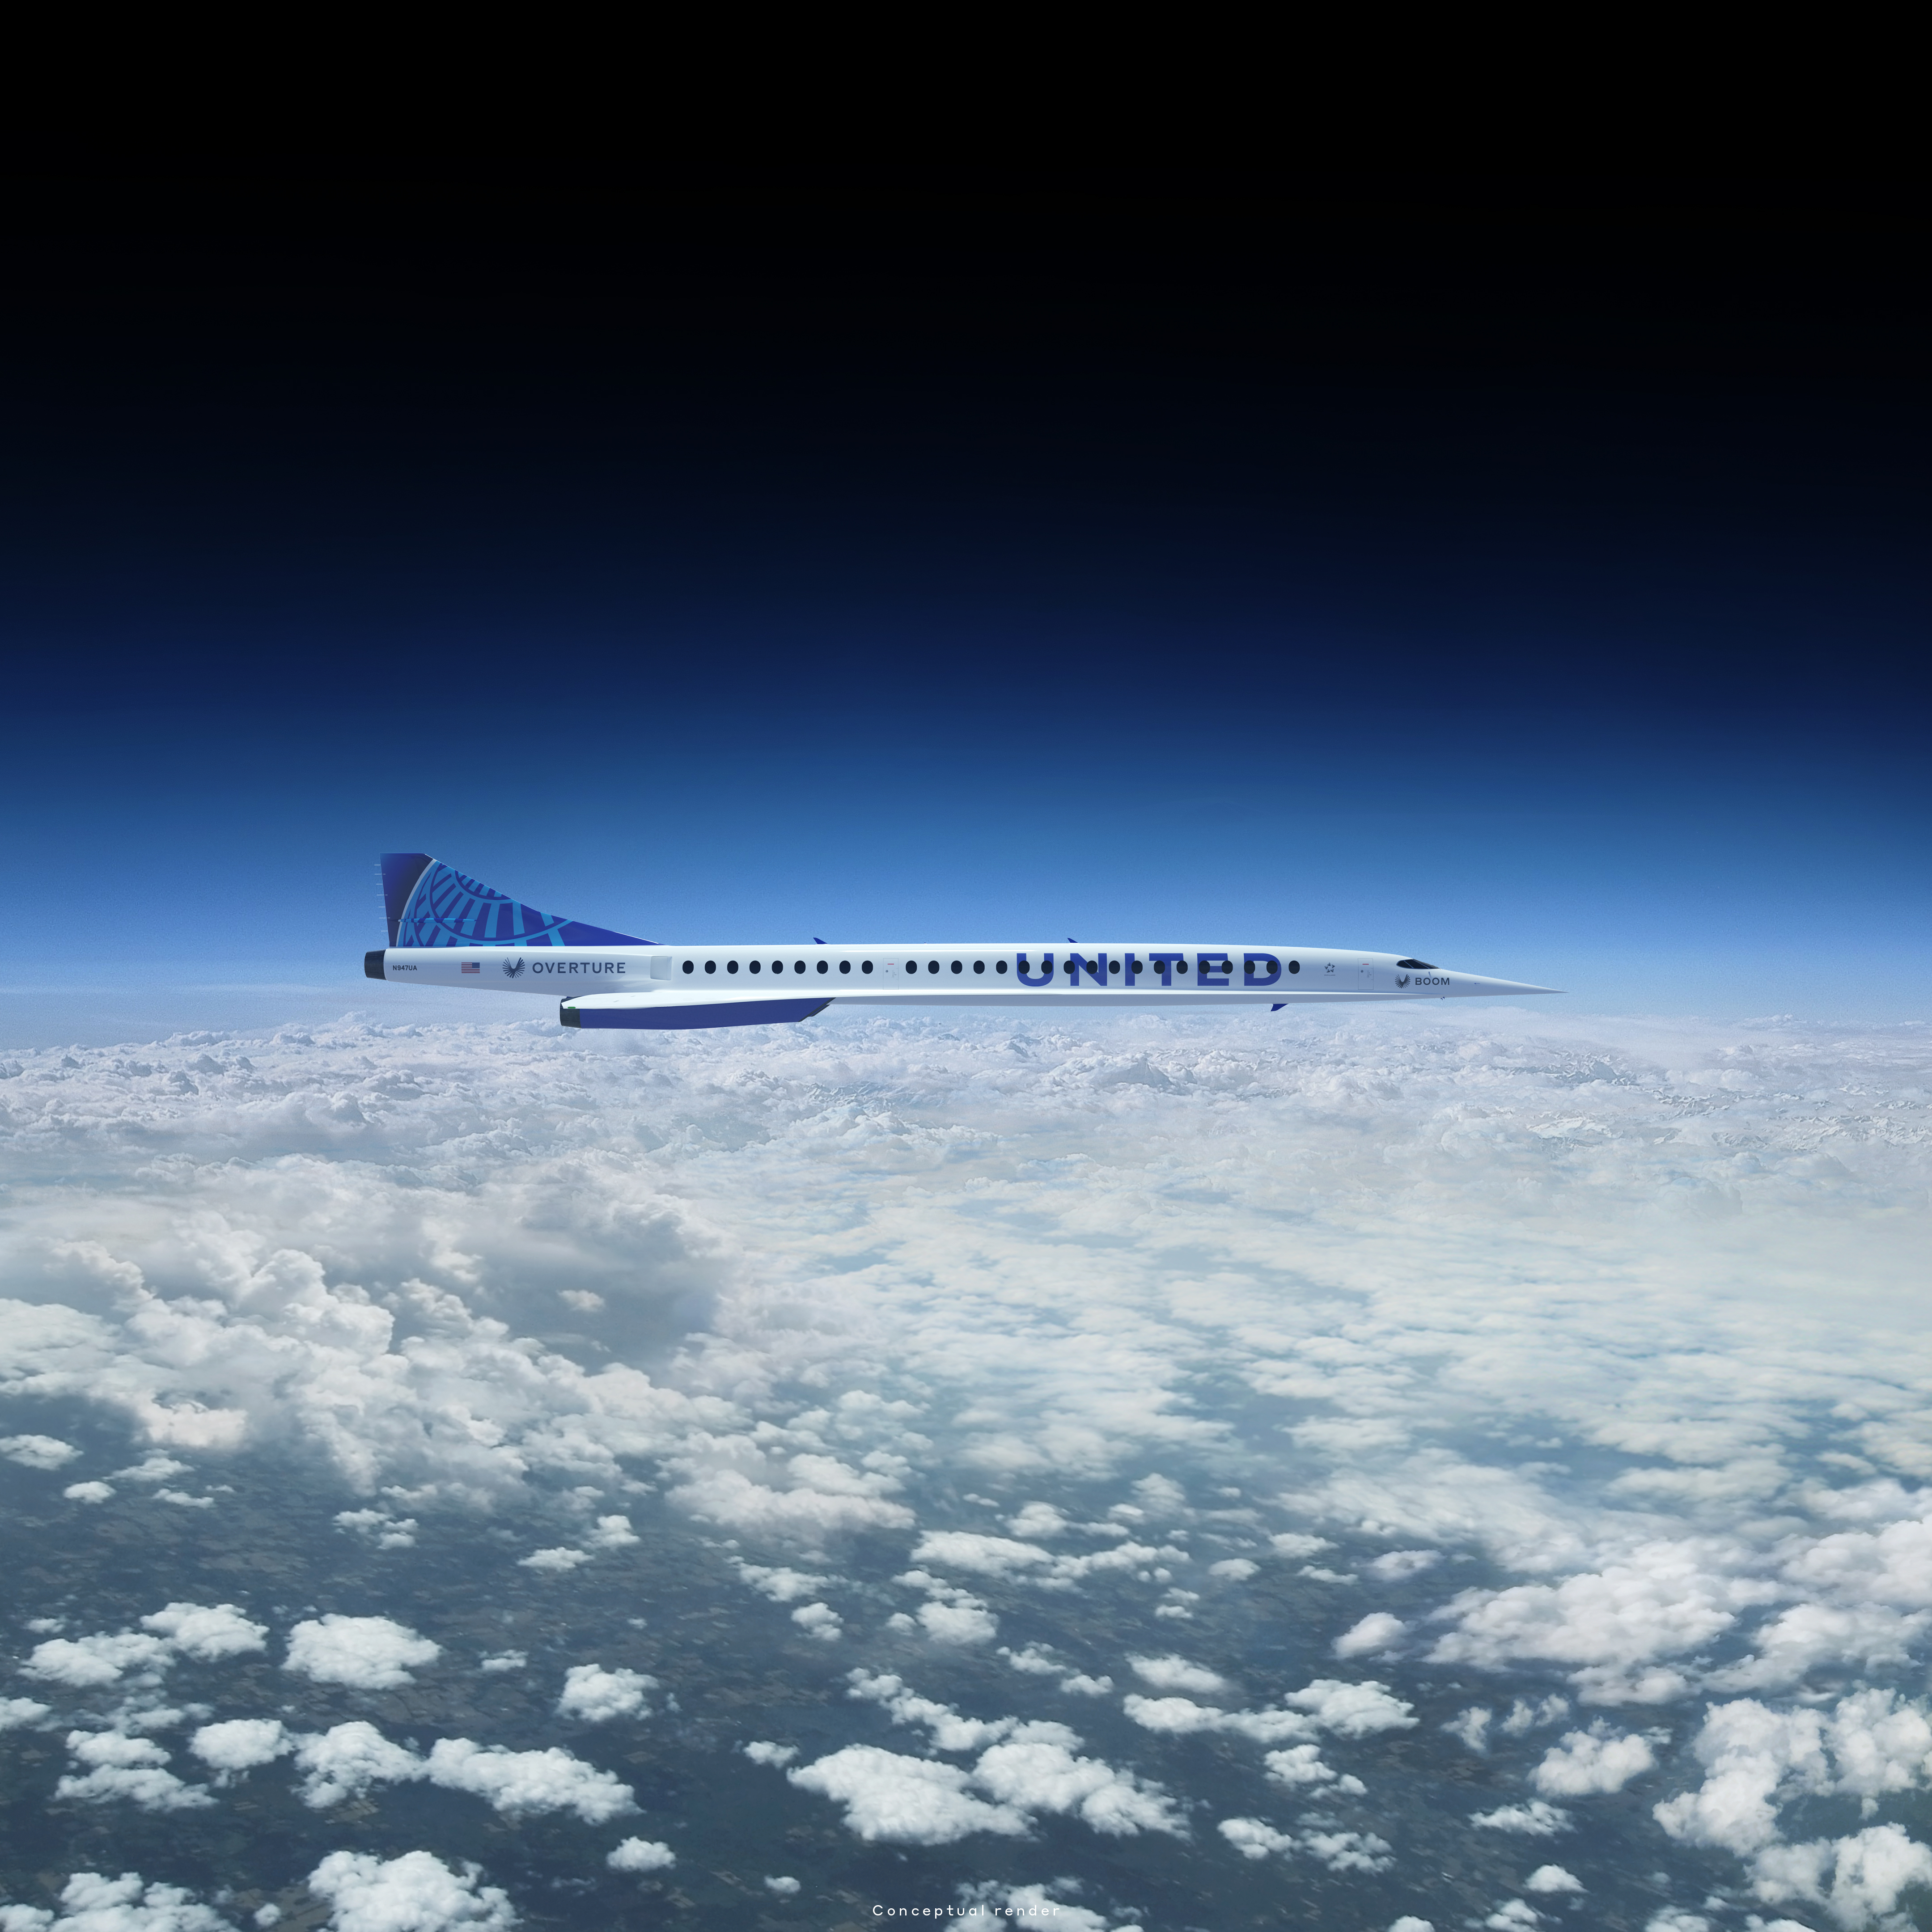 A United-branded supersonic jet flying over clouds.